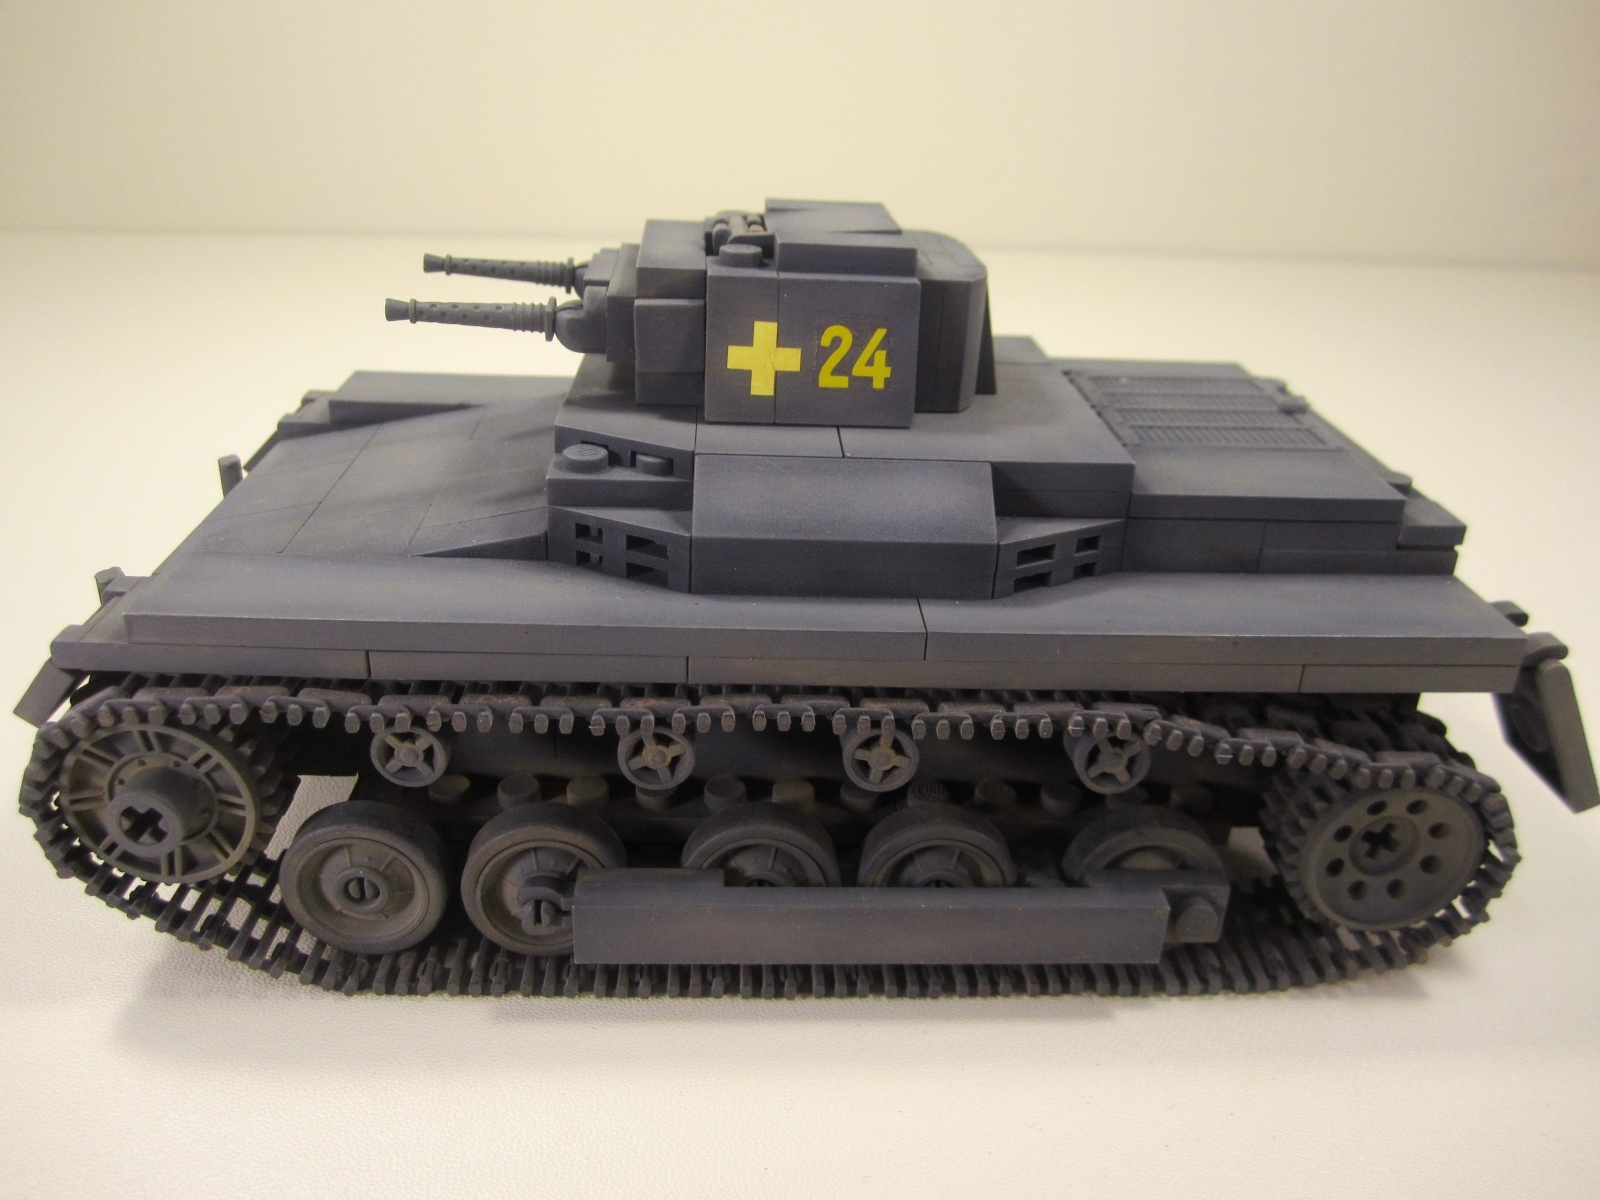 Cobi_2474_PzKpfw_I_www.super-bricks.de_camouflage_paint_Small_Army_Tarnung_04